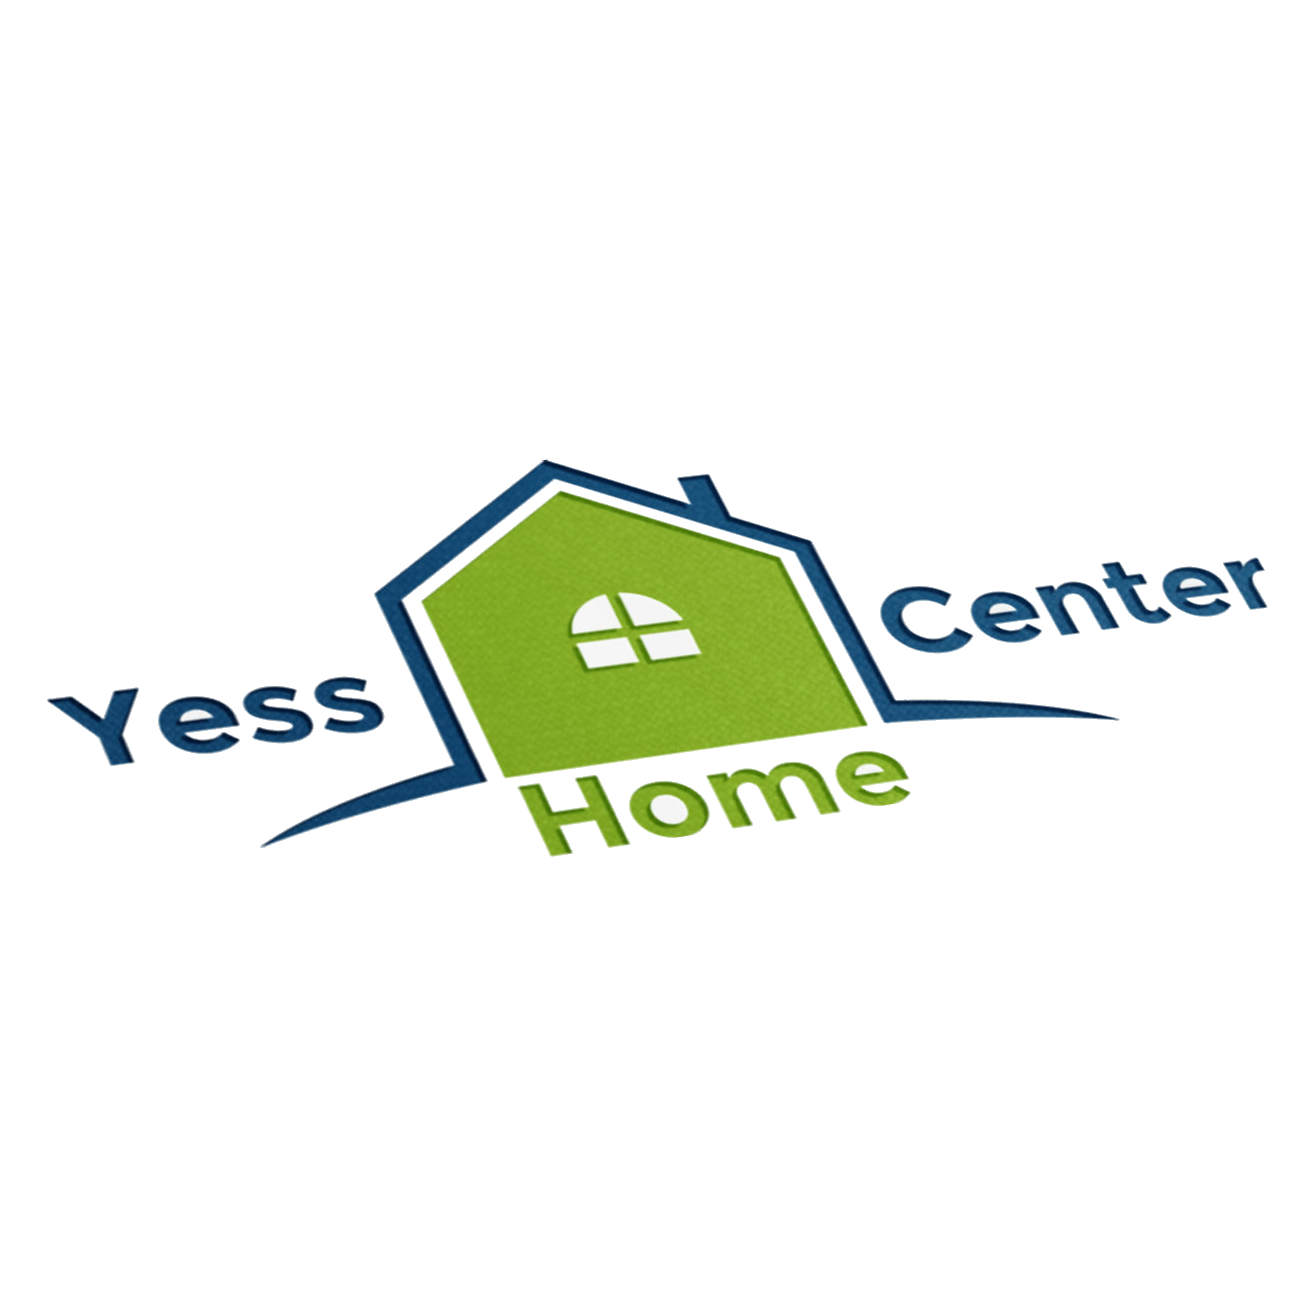 Yess Home Center of Baxley image 5